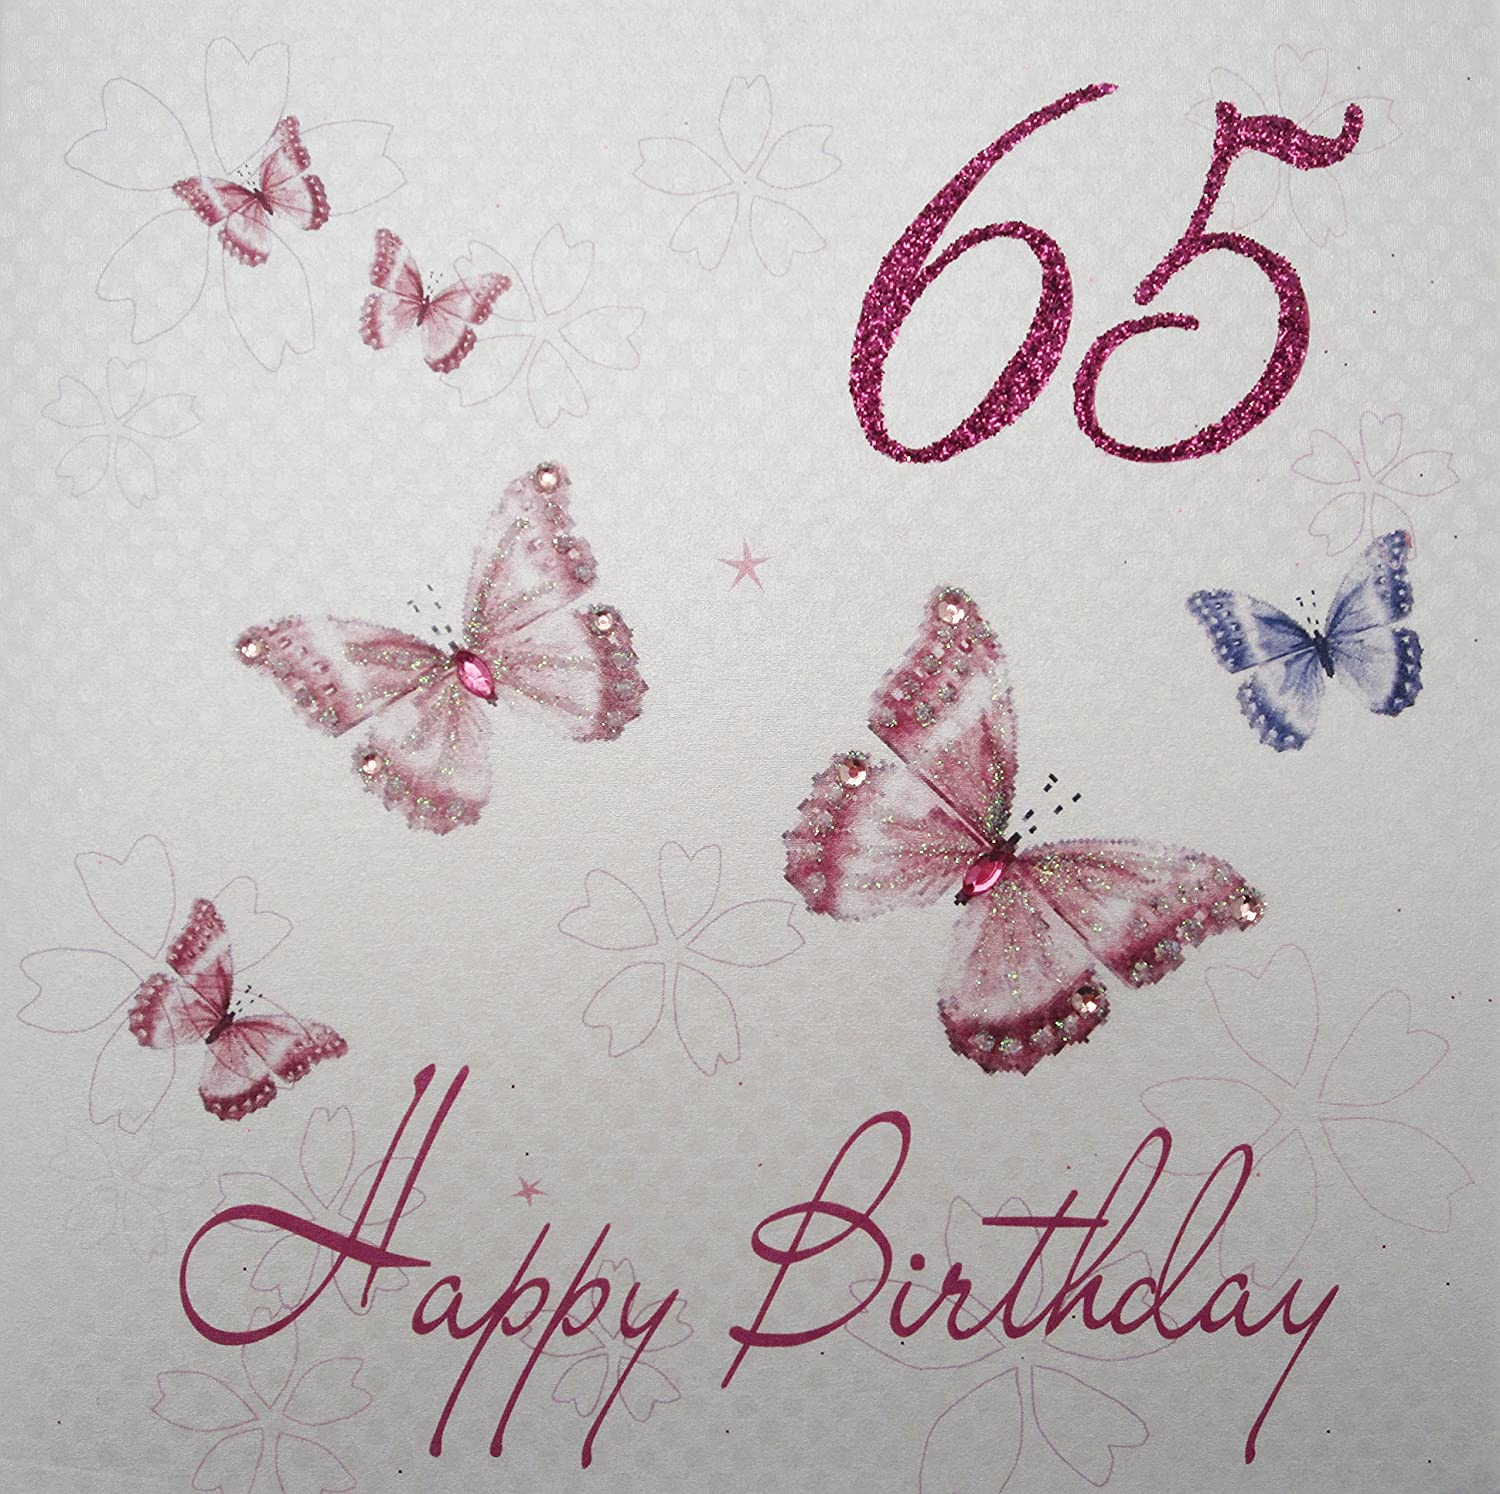 Download 65th birthday card turning 65 happy 65th birthday friend - White Cotton Cards Butterflies 65 Happy Birthday Handmade 65th Birthday Card Amazon Co Uk Kitchen Home